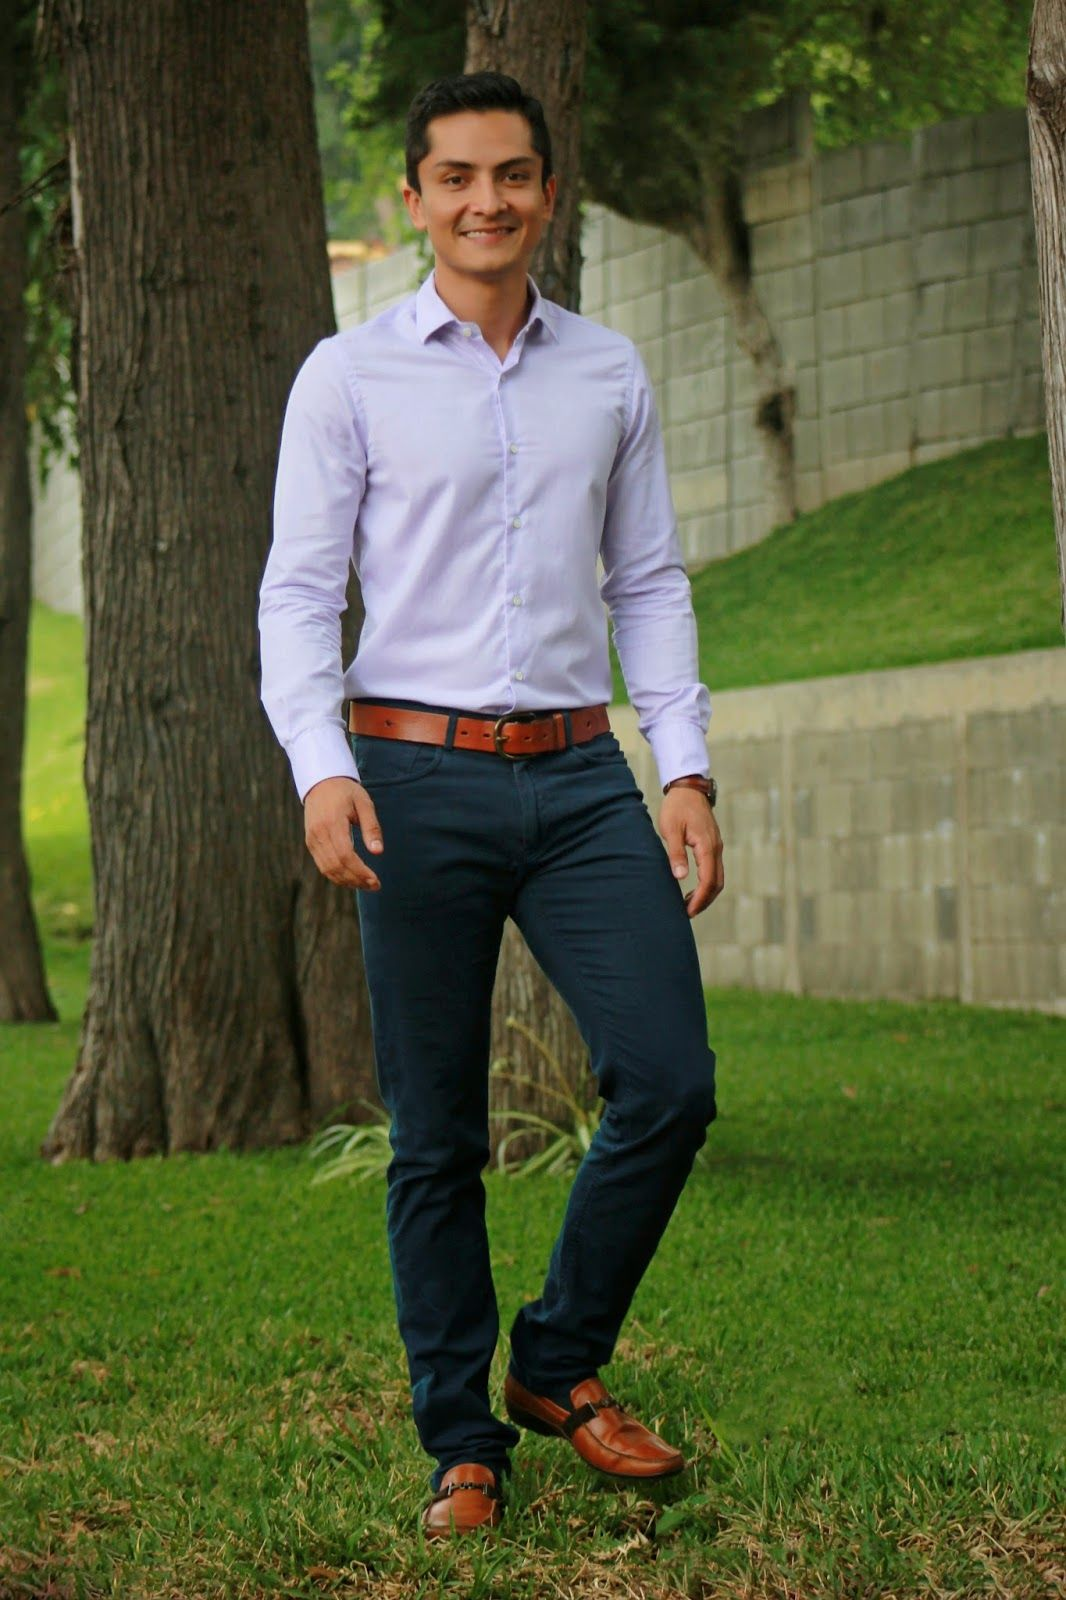 Pin By Sophia Hanser On Fancy Hansy In 2018 Pinterest Gents Tendencies Long Pants Rigid Quarter Chinos Khaki 26 Navy Blue Cognac Shoes Belt Watch Lilac Shirt Mens Attire Business Look